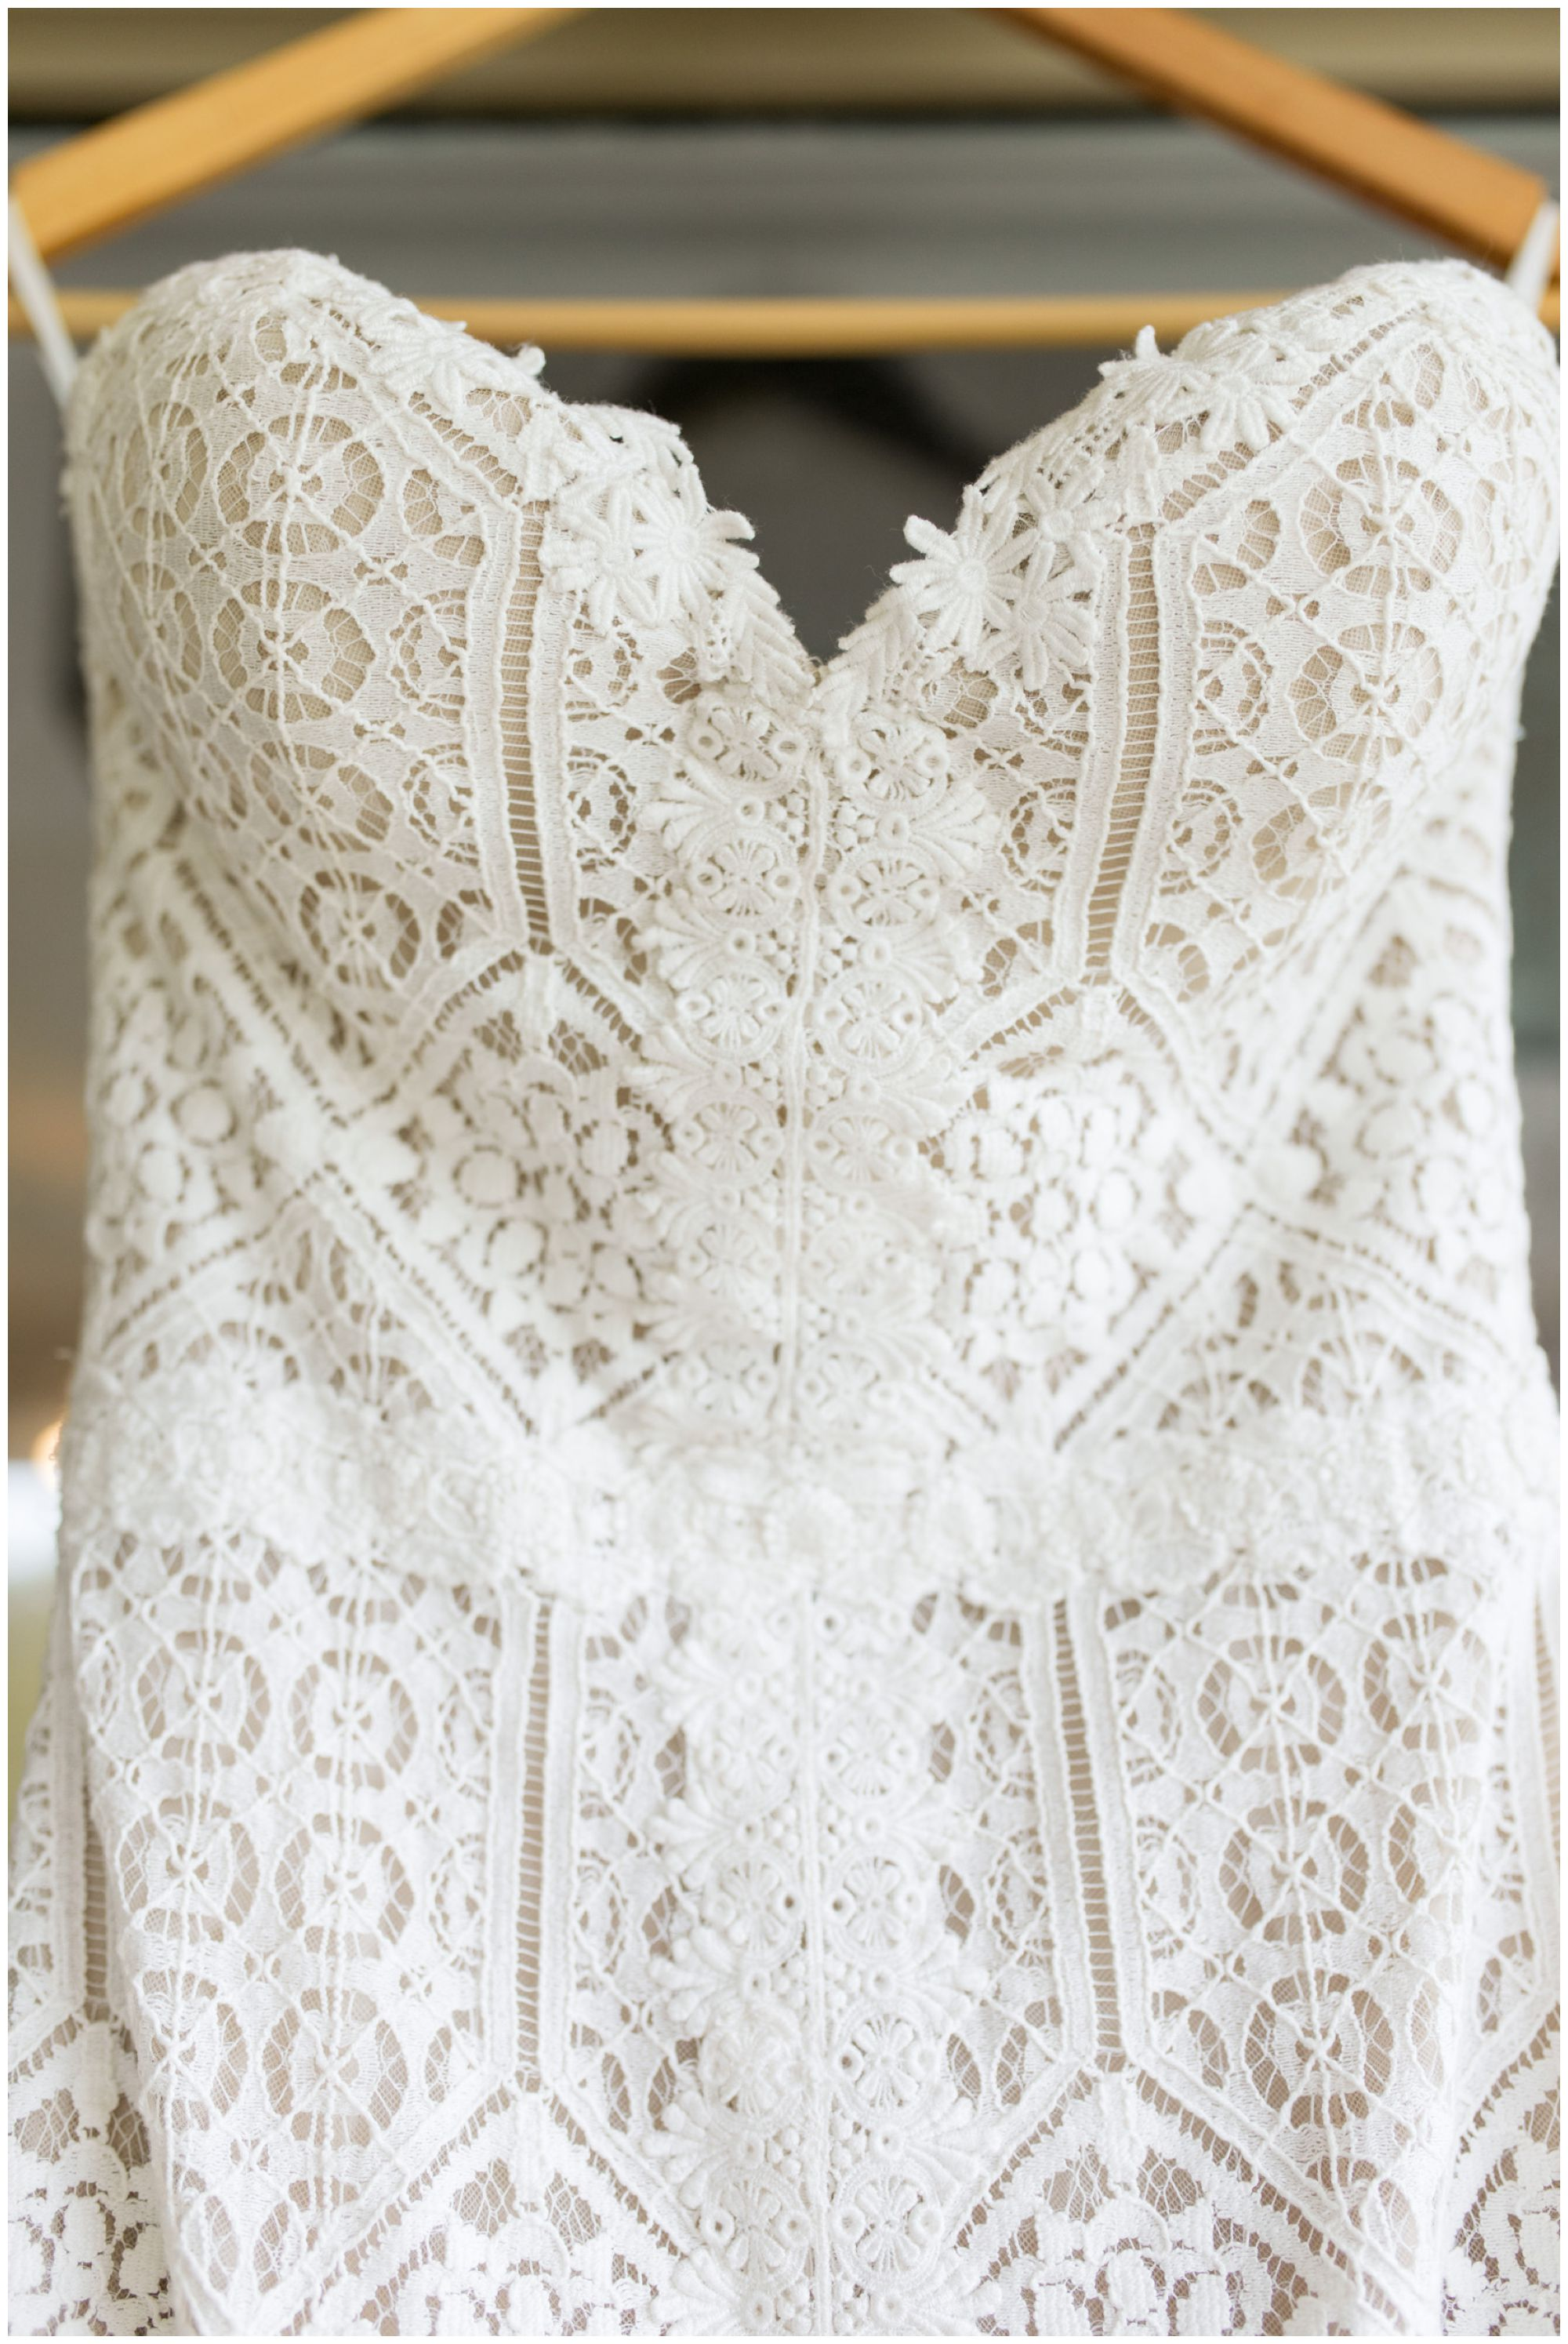 Indianapolis bride's wedding dress from Sophia's Bridal and Tux